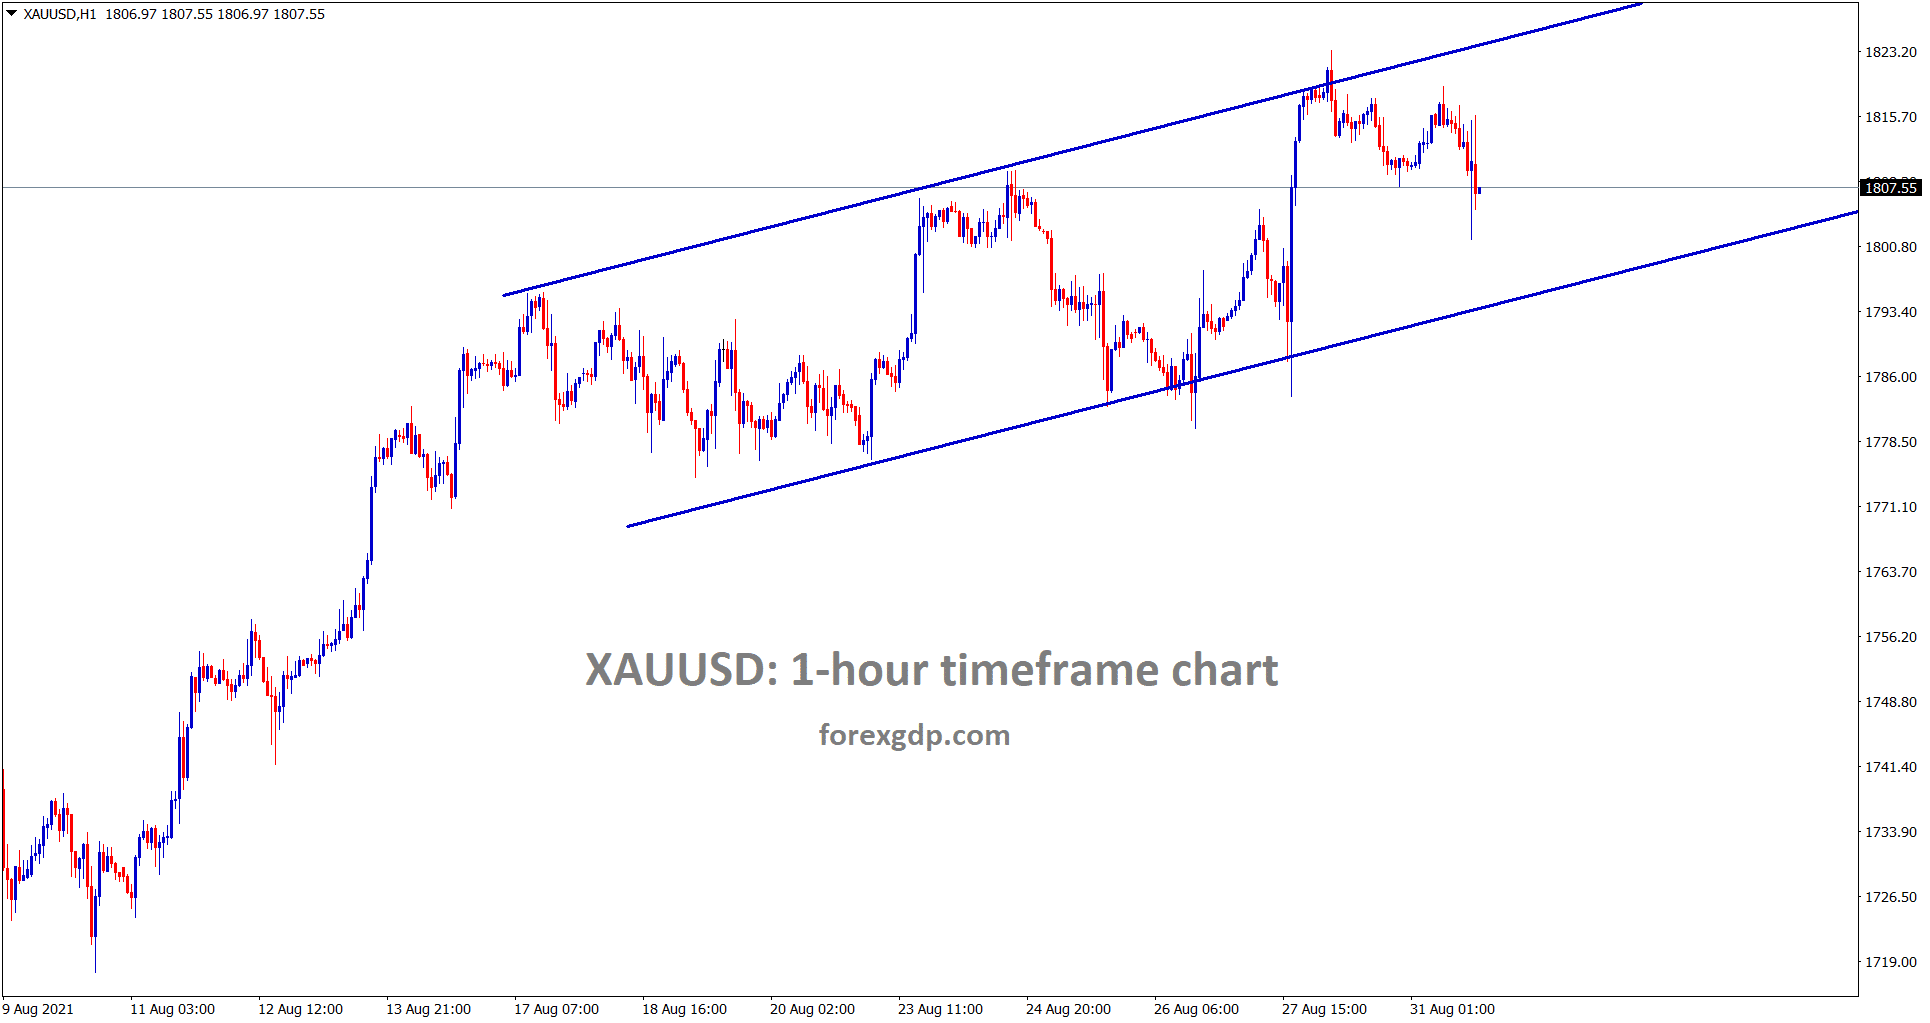 Gold price is moving in an Ascending channel in the 1 hour timeframe